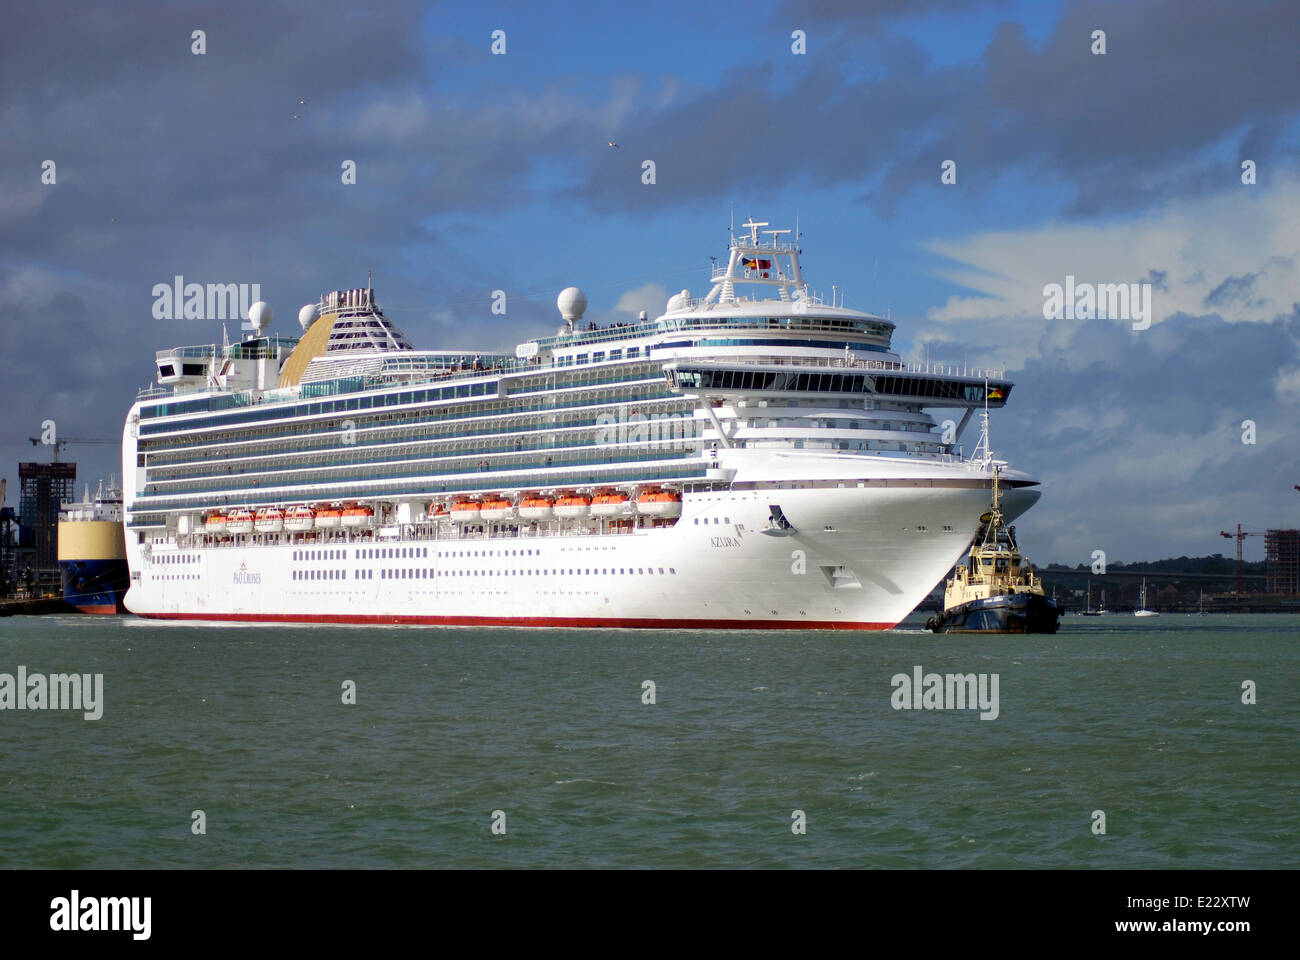 The cruise ship Azura operated by P&O cruises departs from Southampton on a cruise to Portugal. - Stock Image